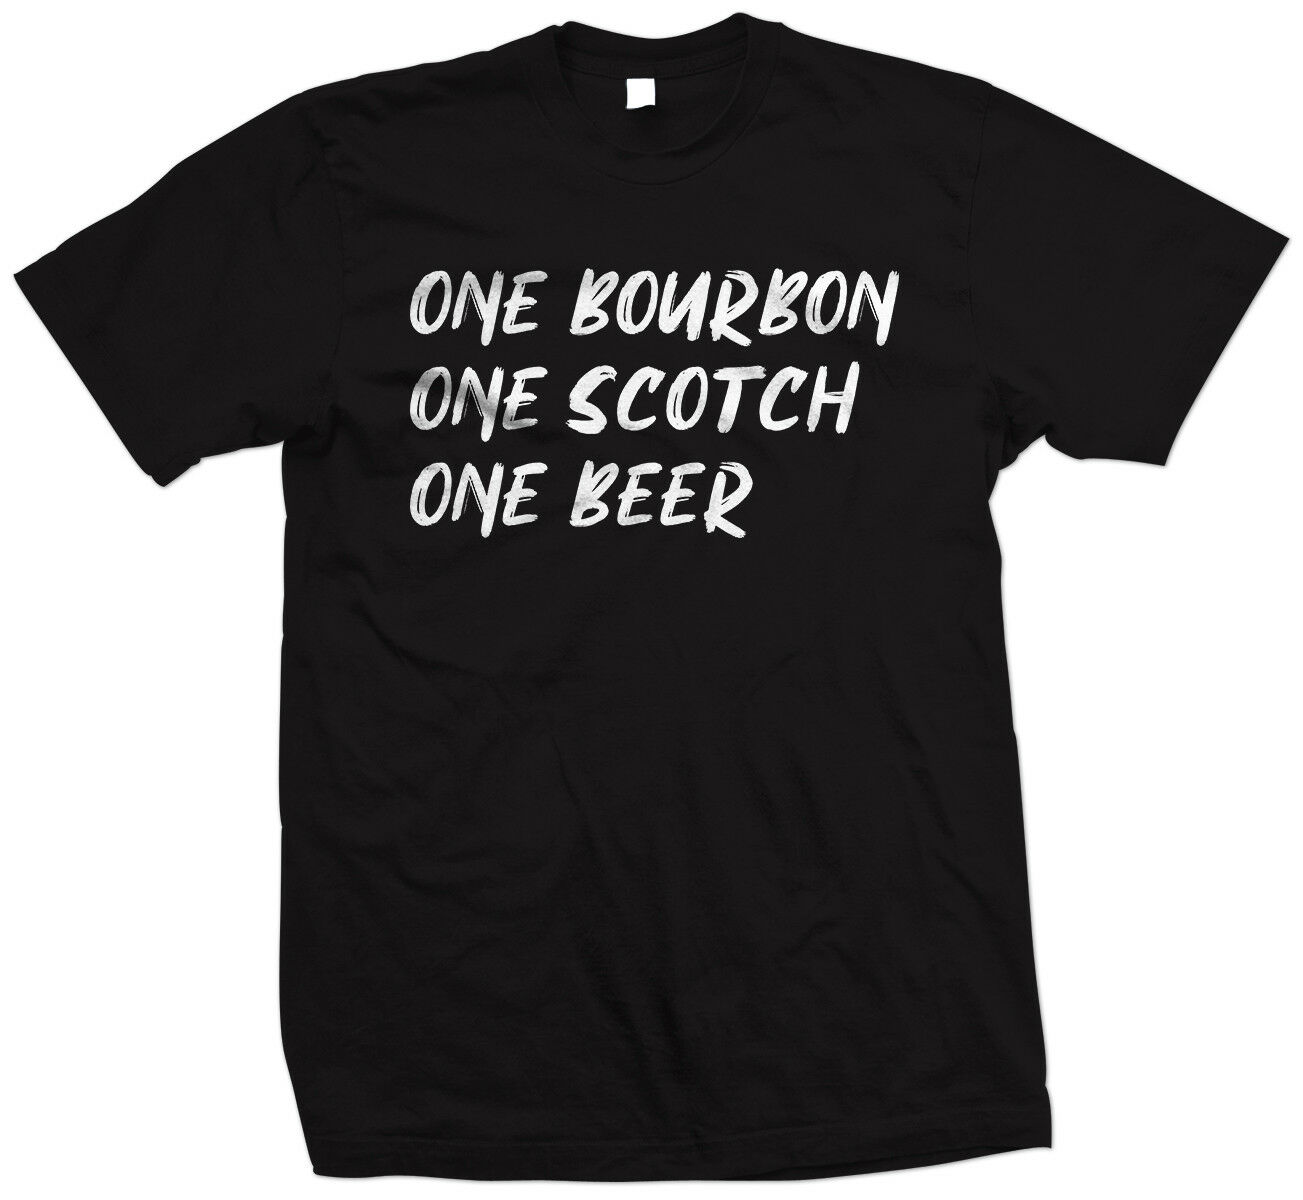 A wave of side whisky, a Scotch whisky and a small beer release g Thorogood mens and womens Short Sleeve T-Shirt